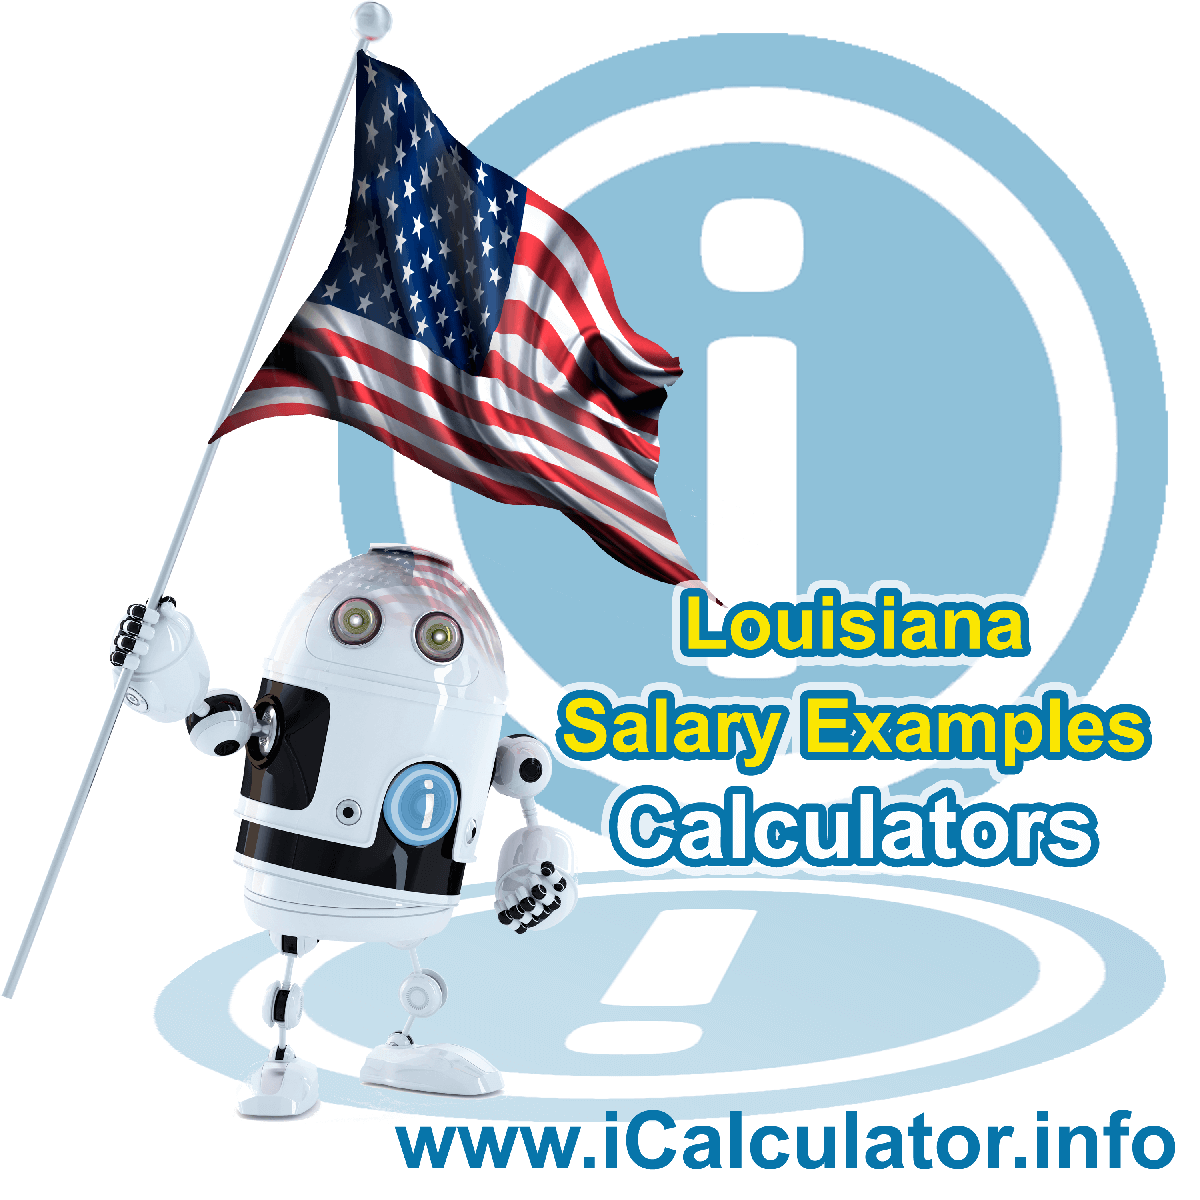 Louisiana Salary Example for $230.00 in 2020 | iCalculator | $230.00 salary example for employee and employer paying Louisiana State tincome taxes. Detailed salary after tax calculation including Louisiana State Tax, Federal State Tax, Medicare Deductions, Social Security, Capital Gains and other income tax and salary deductions complete with supporting Louisiana state tax tables